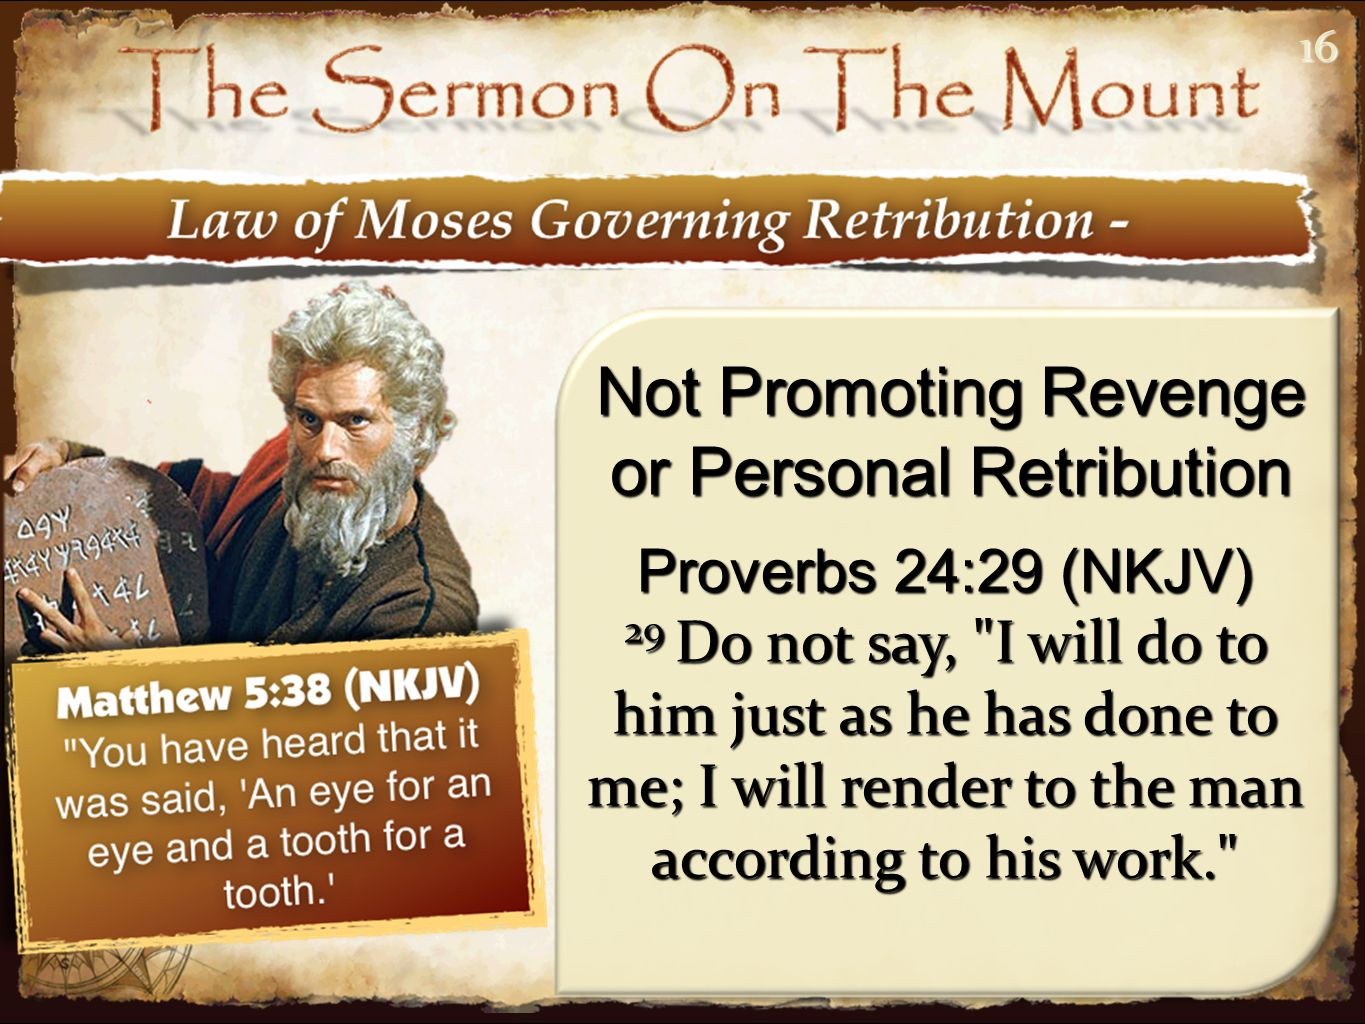 1616 Not Promoting Revenge or Personal Retribution Proverbs 24:29 (NKJV) 29 Do not say, I will do to him just as he has done to me; I will render to the man according to his work.